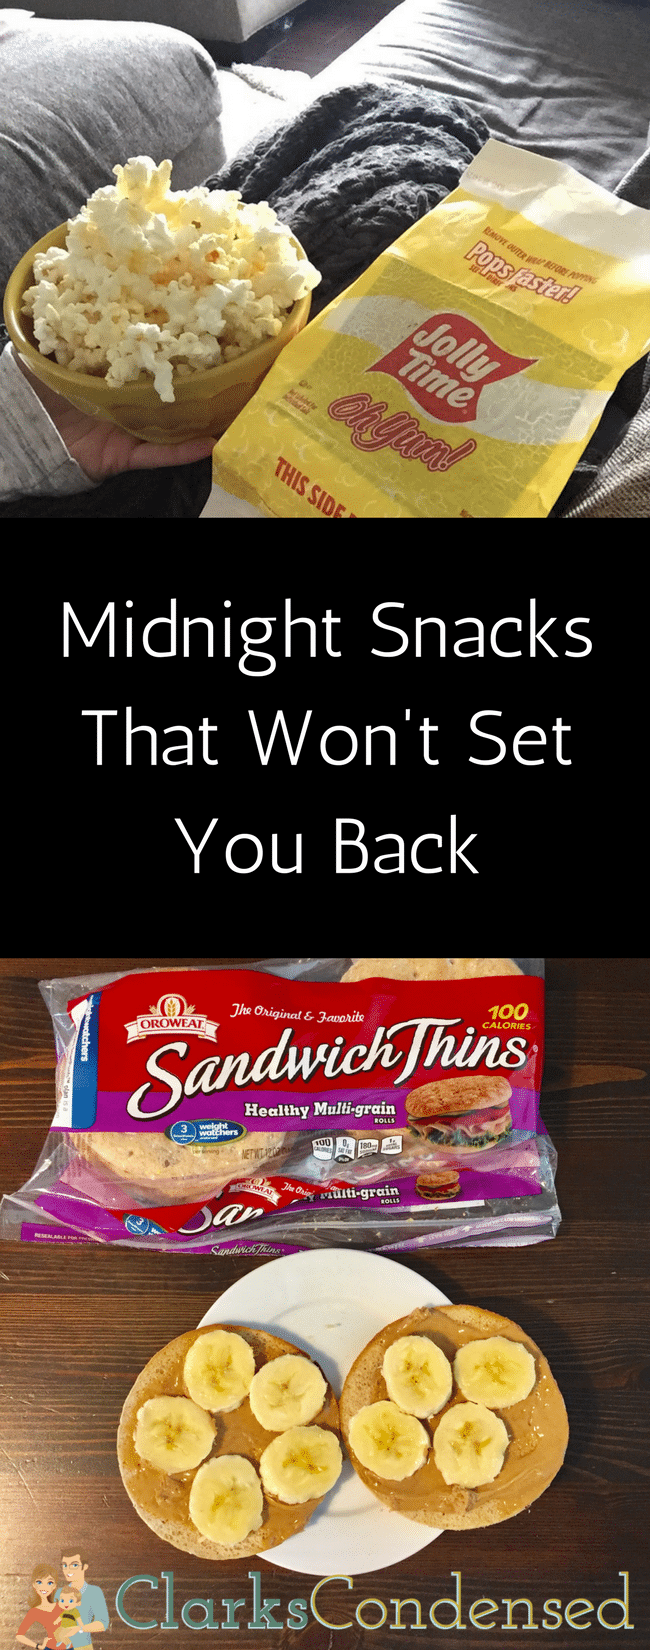 Midnight Snacks that won't set you back on your health goals! #Wellness4RealLife #WWSponsored #IC #ad  via @clarkscondensed